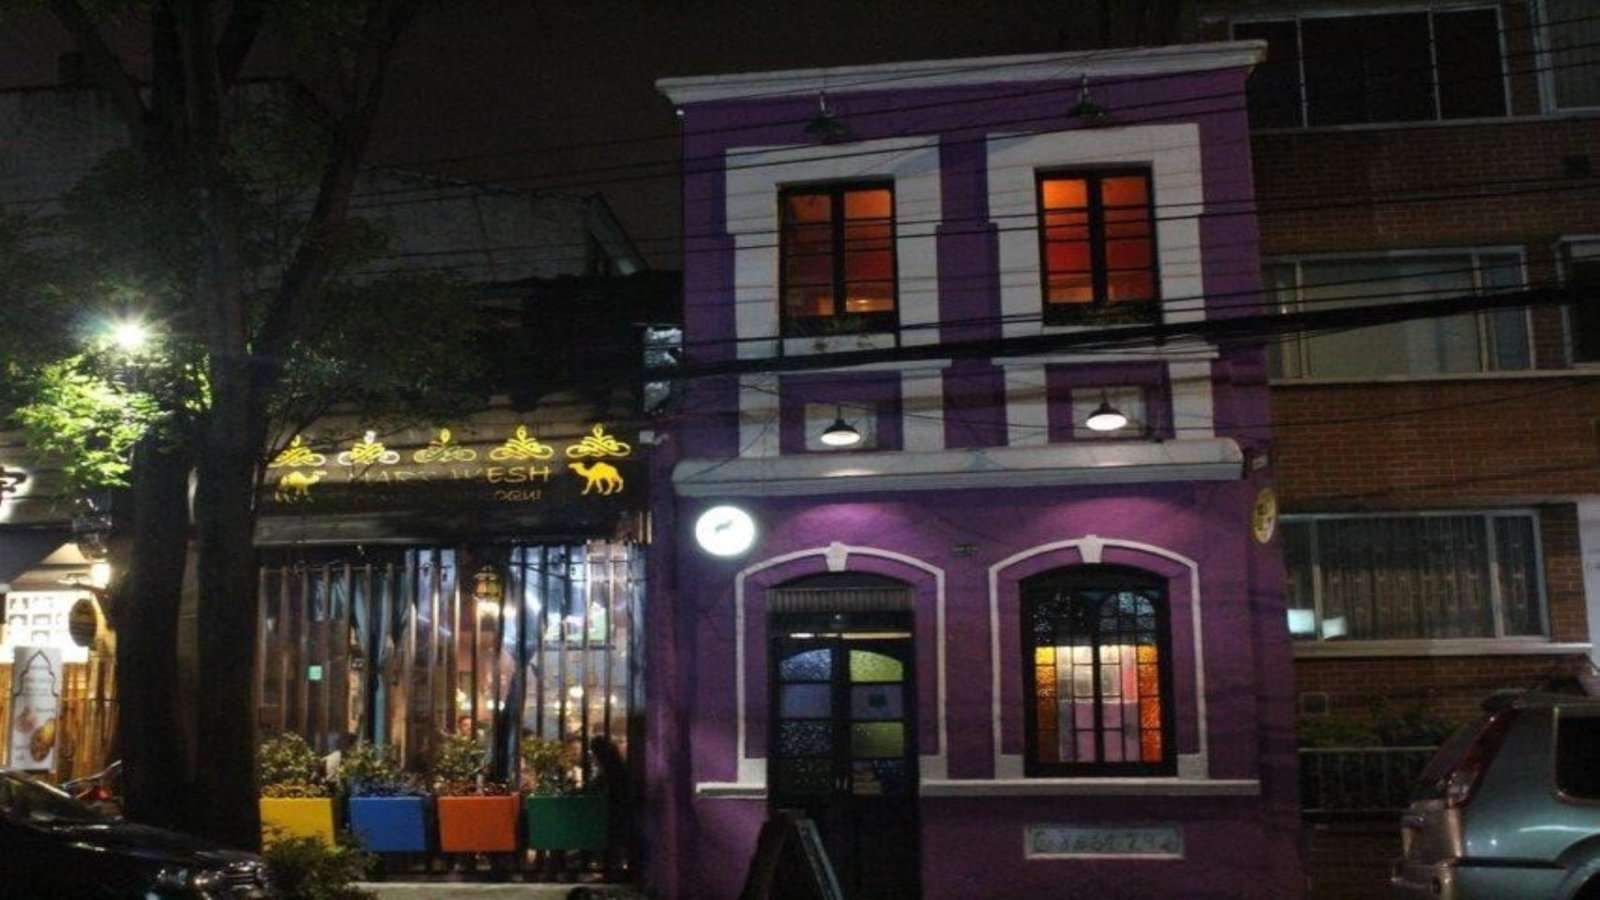 We loved the purple fabulousness of Village Cafe!